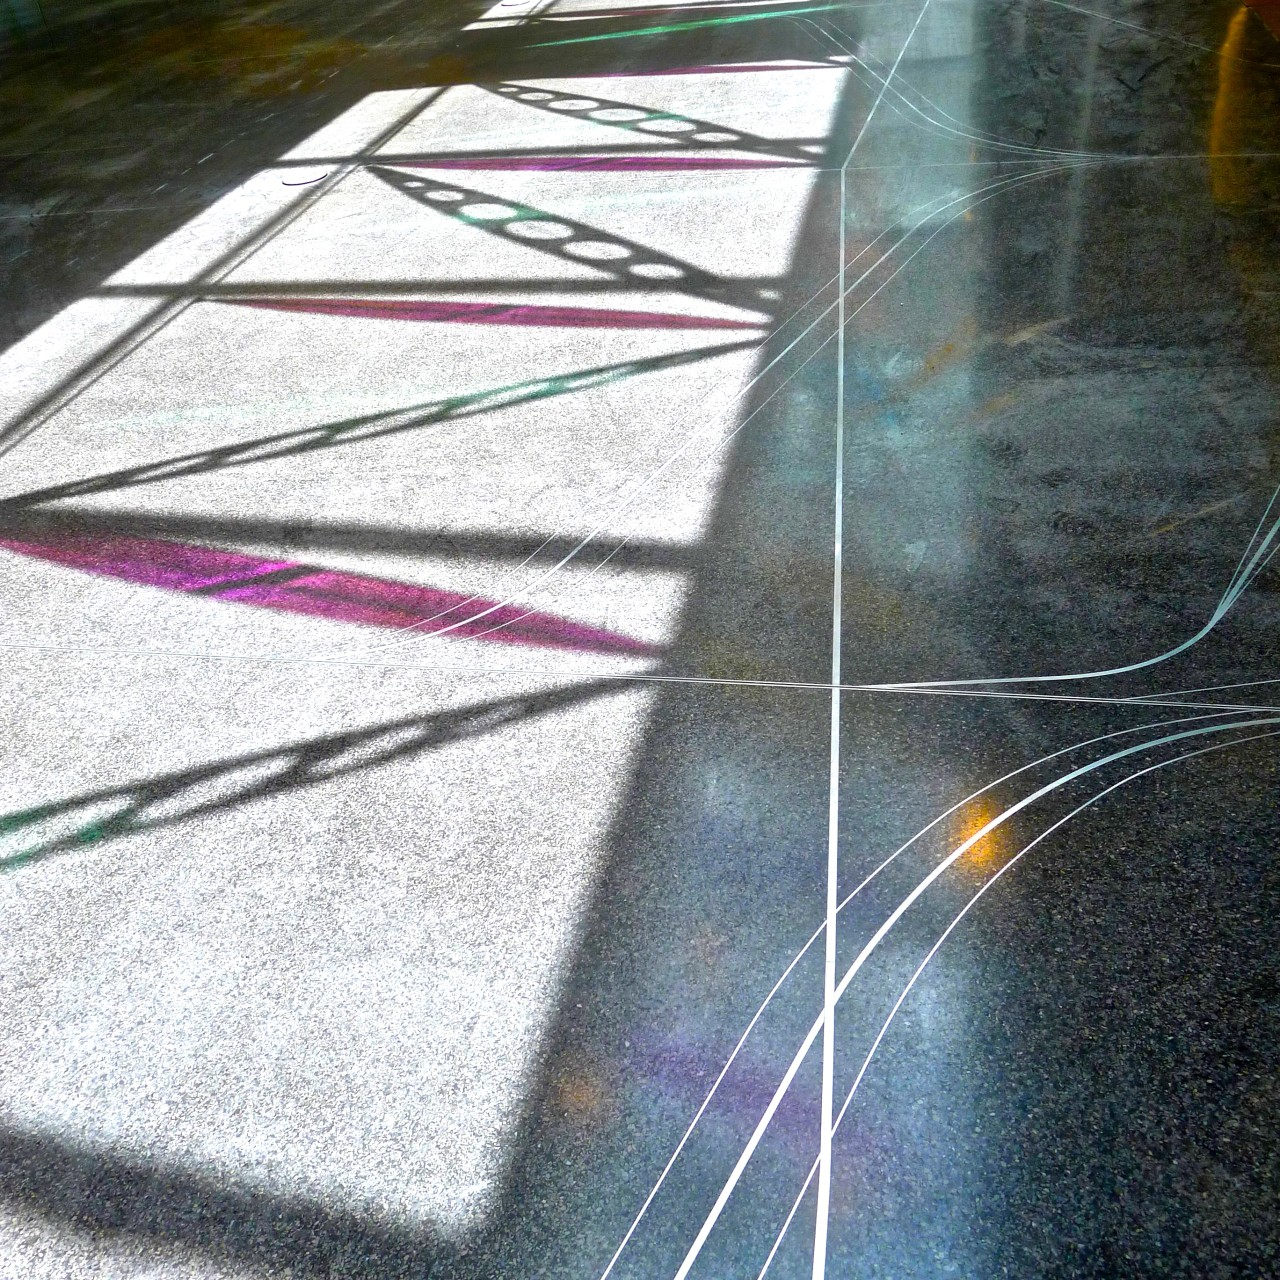 Ed Carpenter's Wichita Dwight D. Eisenhower National Airport signature sculpture Aloft dichroic glass shadow patterns add another element to the experience. / image 20